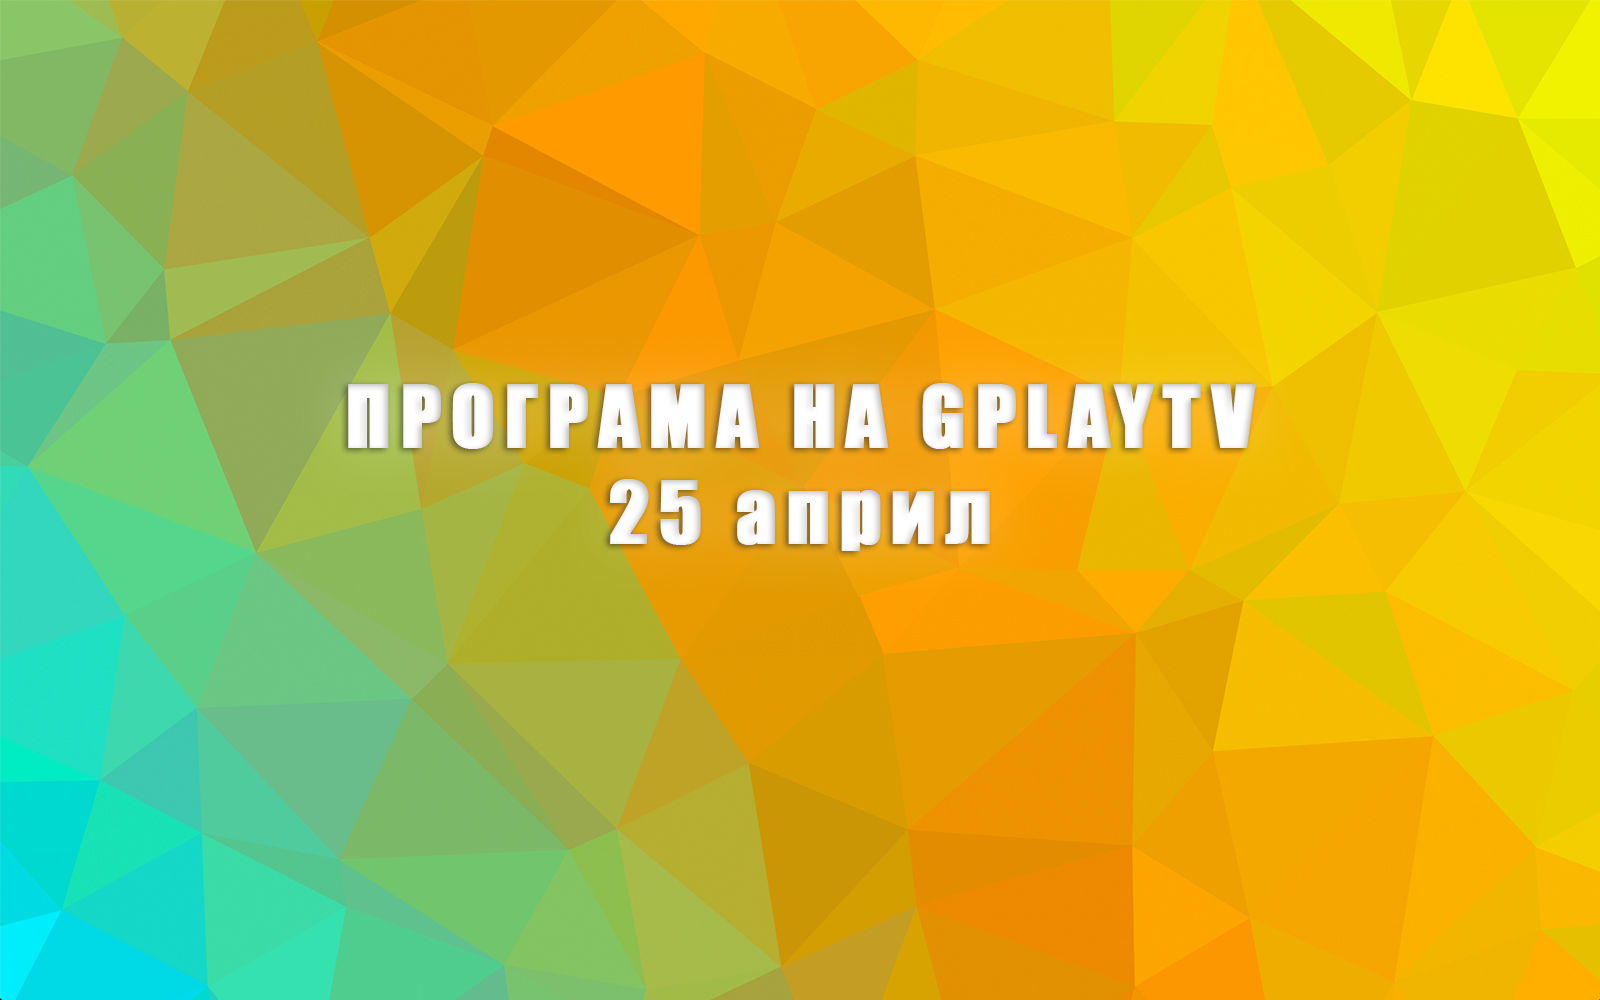 GPLAY TV Program 25.04